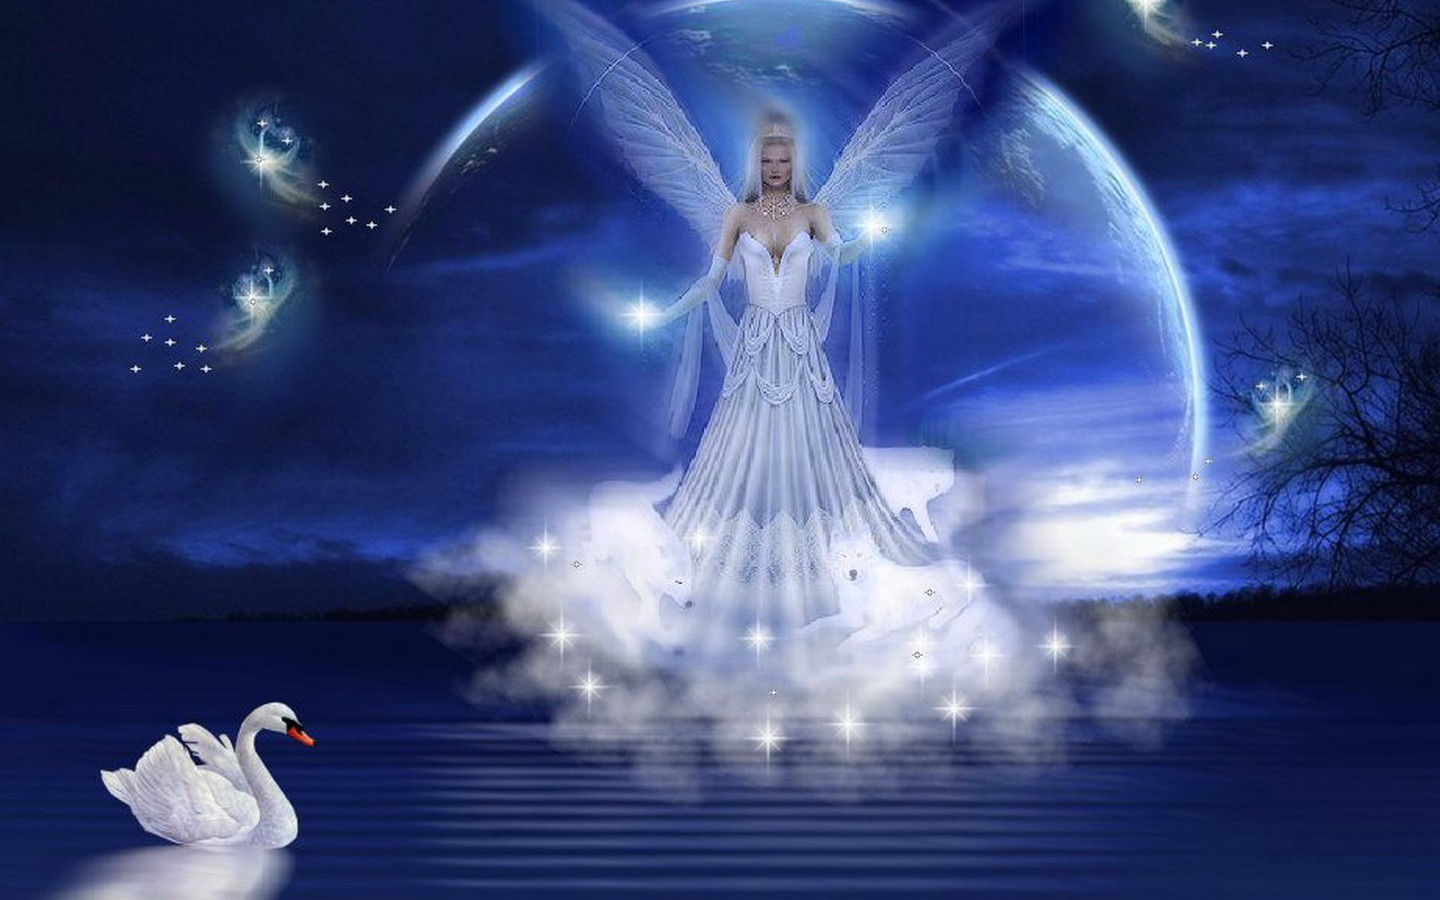 Beautiful Fantasy Angels Wallpapers 1440x900  PIXHOME